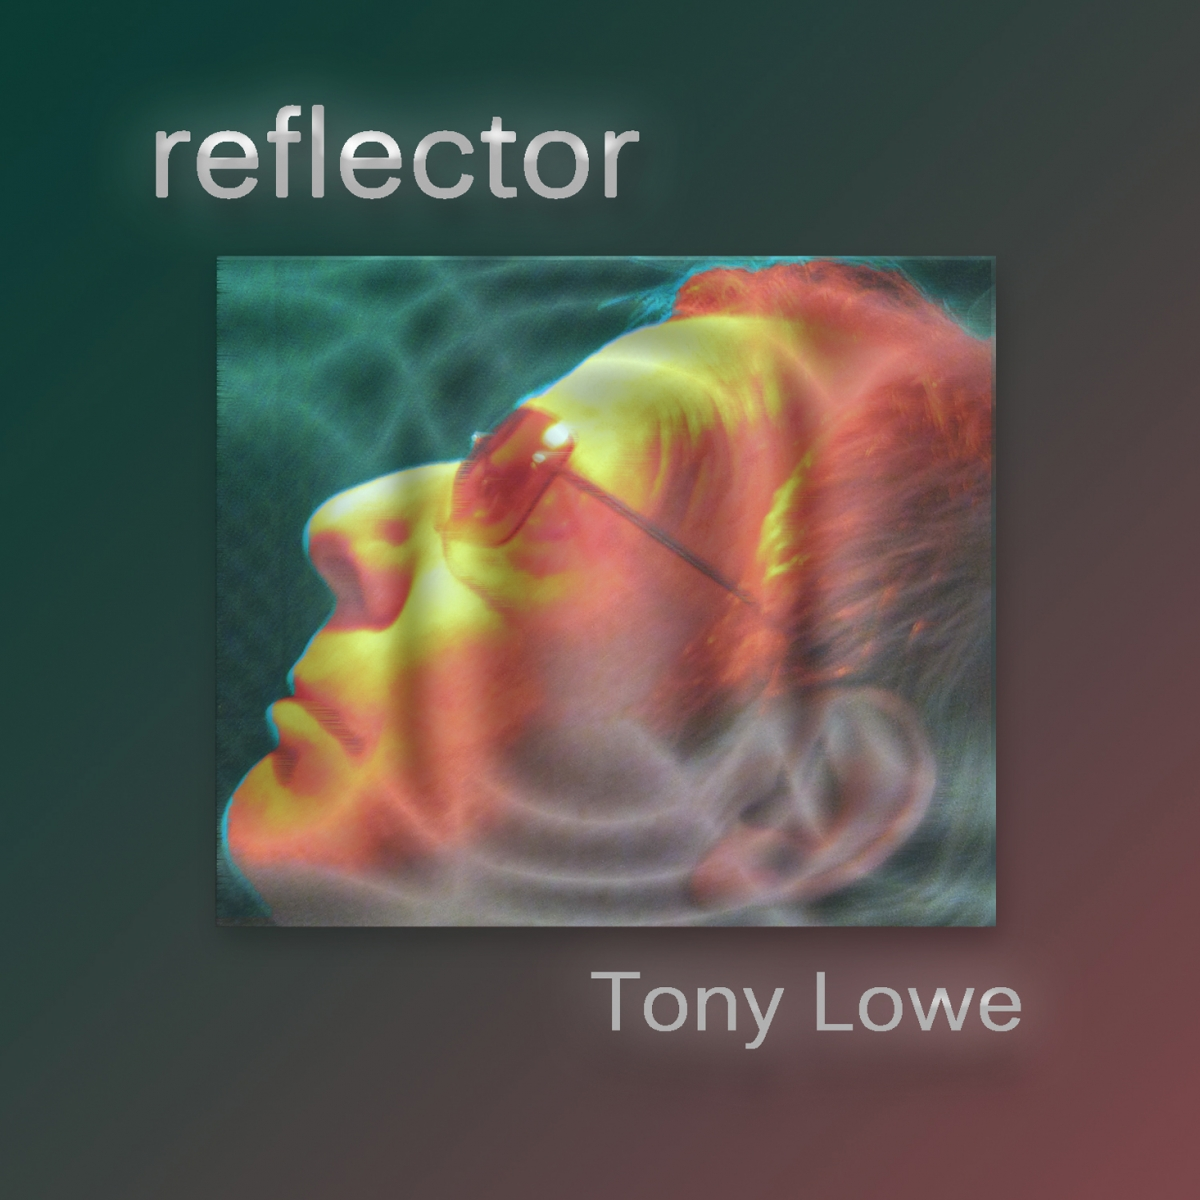 Tony Lowe - reflector - 2012